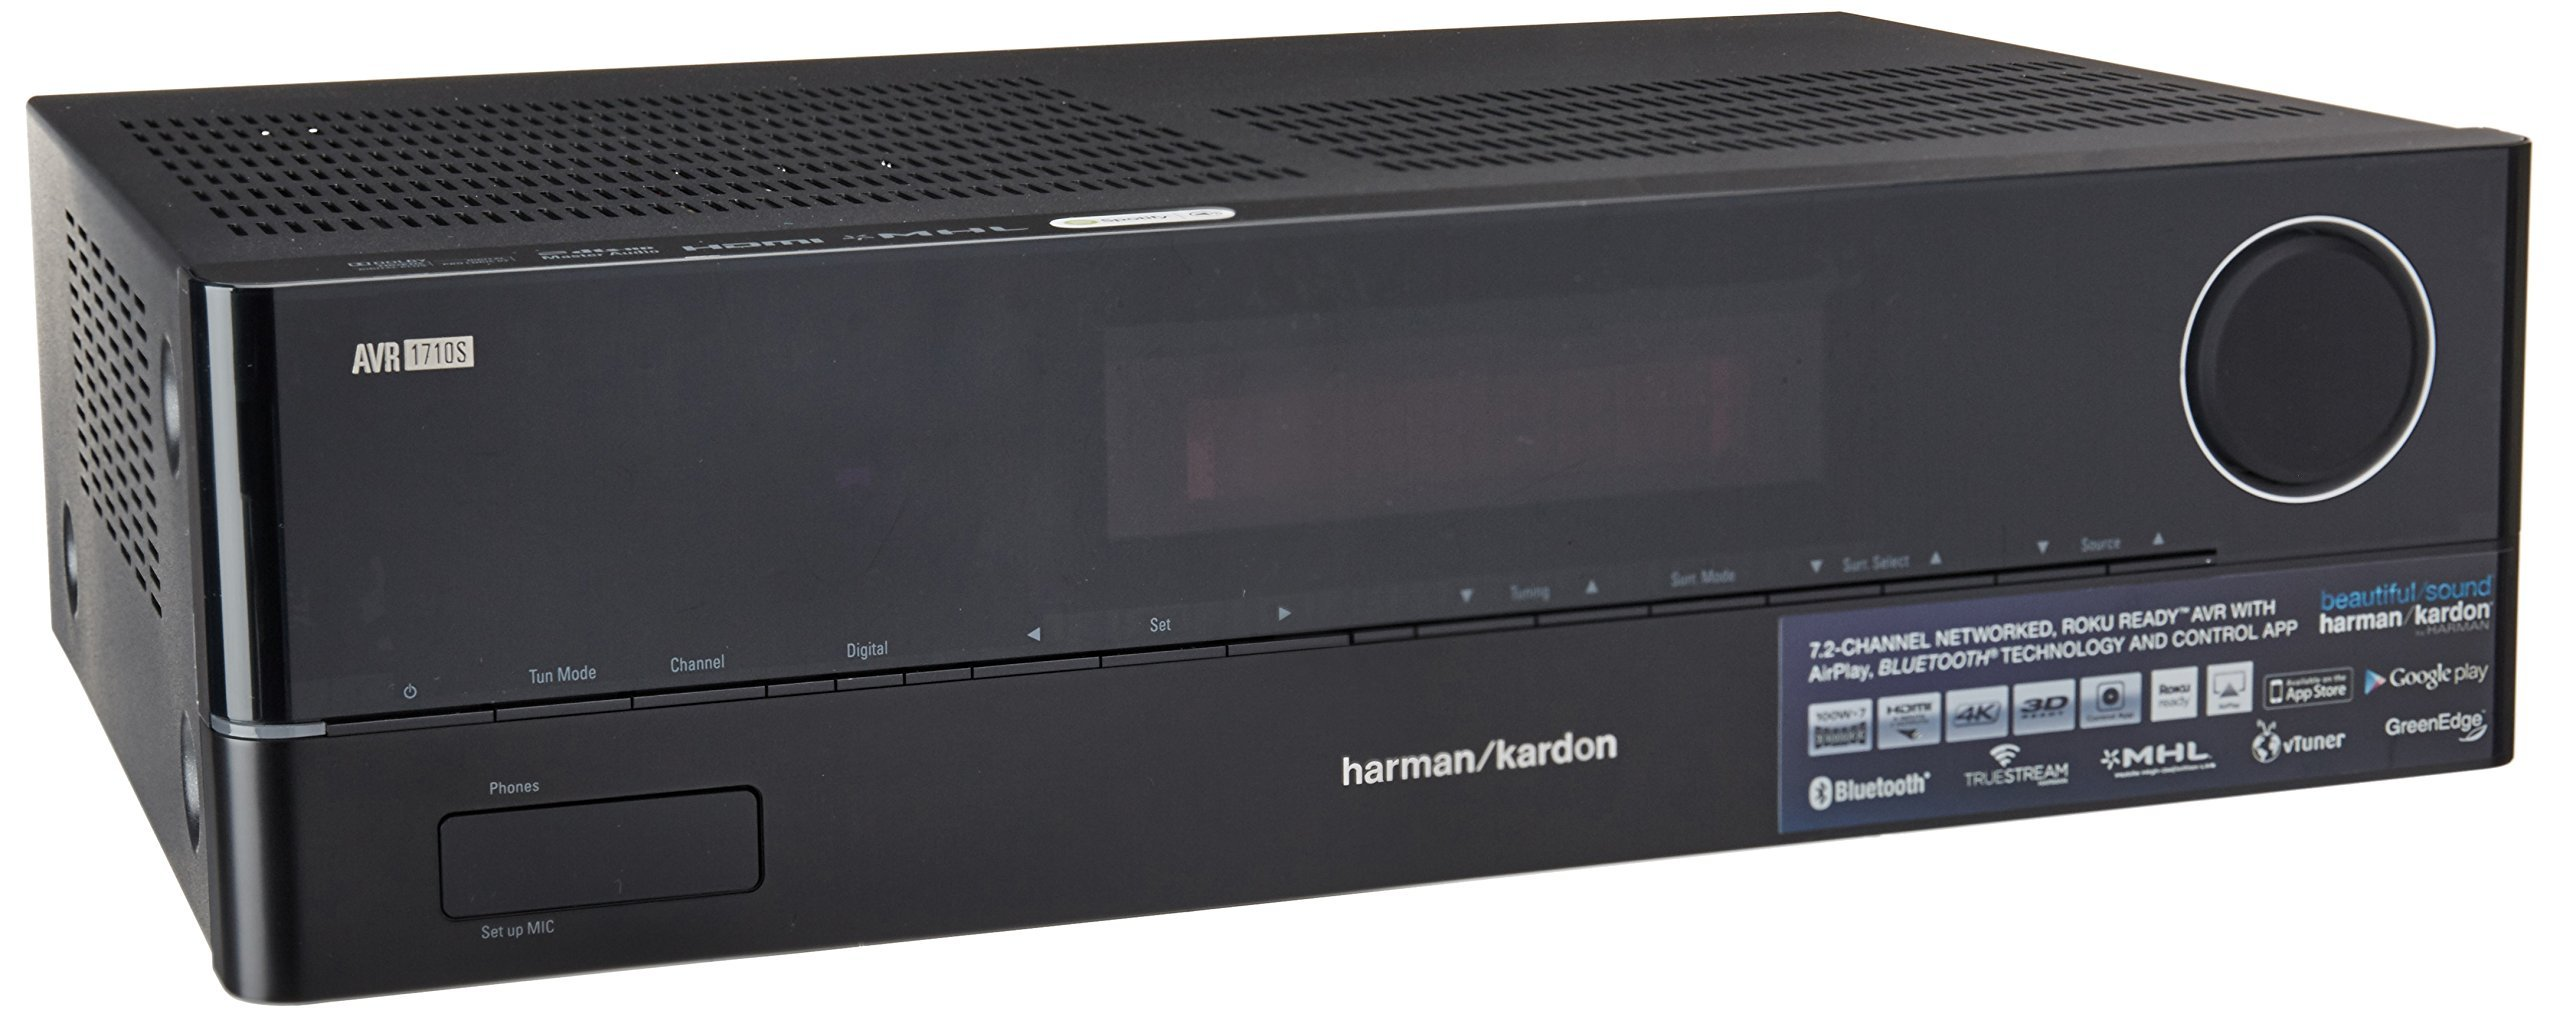 Harman Kardon Audiophile Performance Home Theater Receiver (AVR 1710S) by Harman Kardon